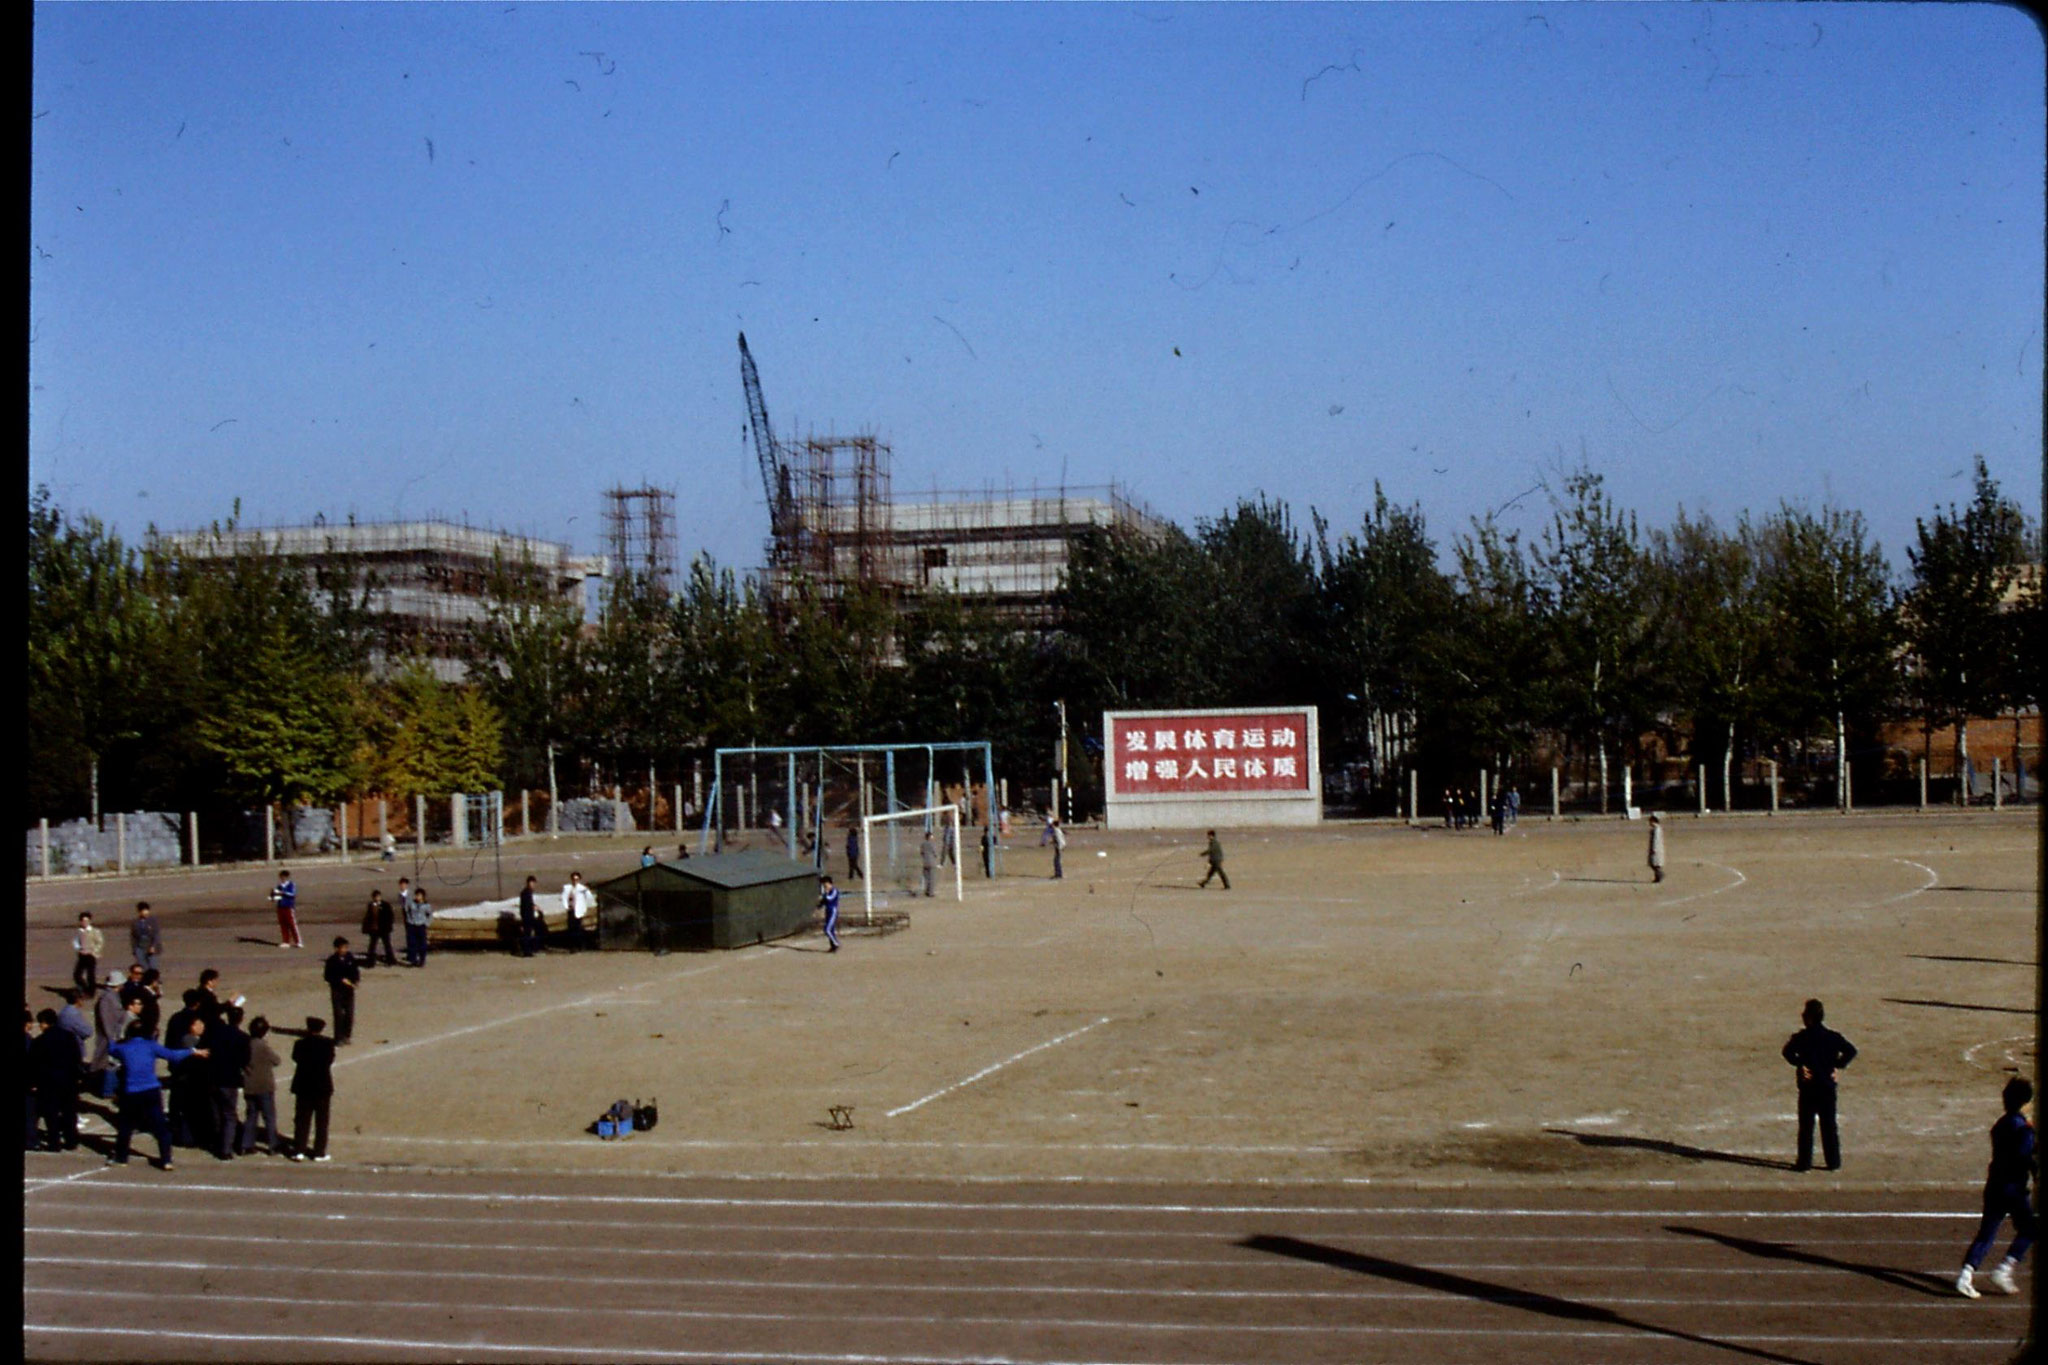 5/11/1988: 23: Beijing Inst. Technology sports track